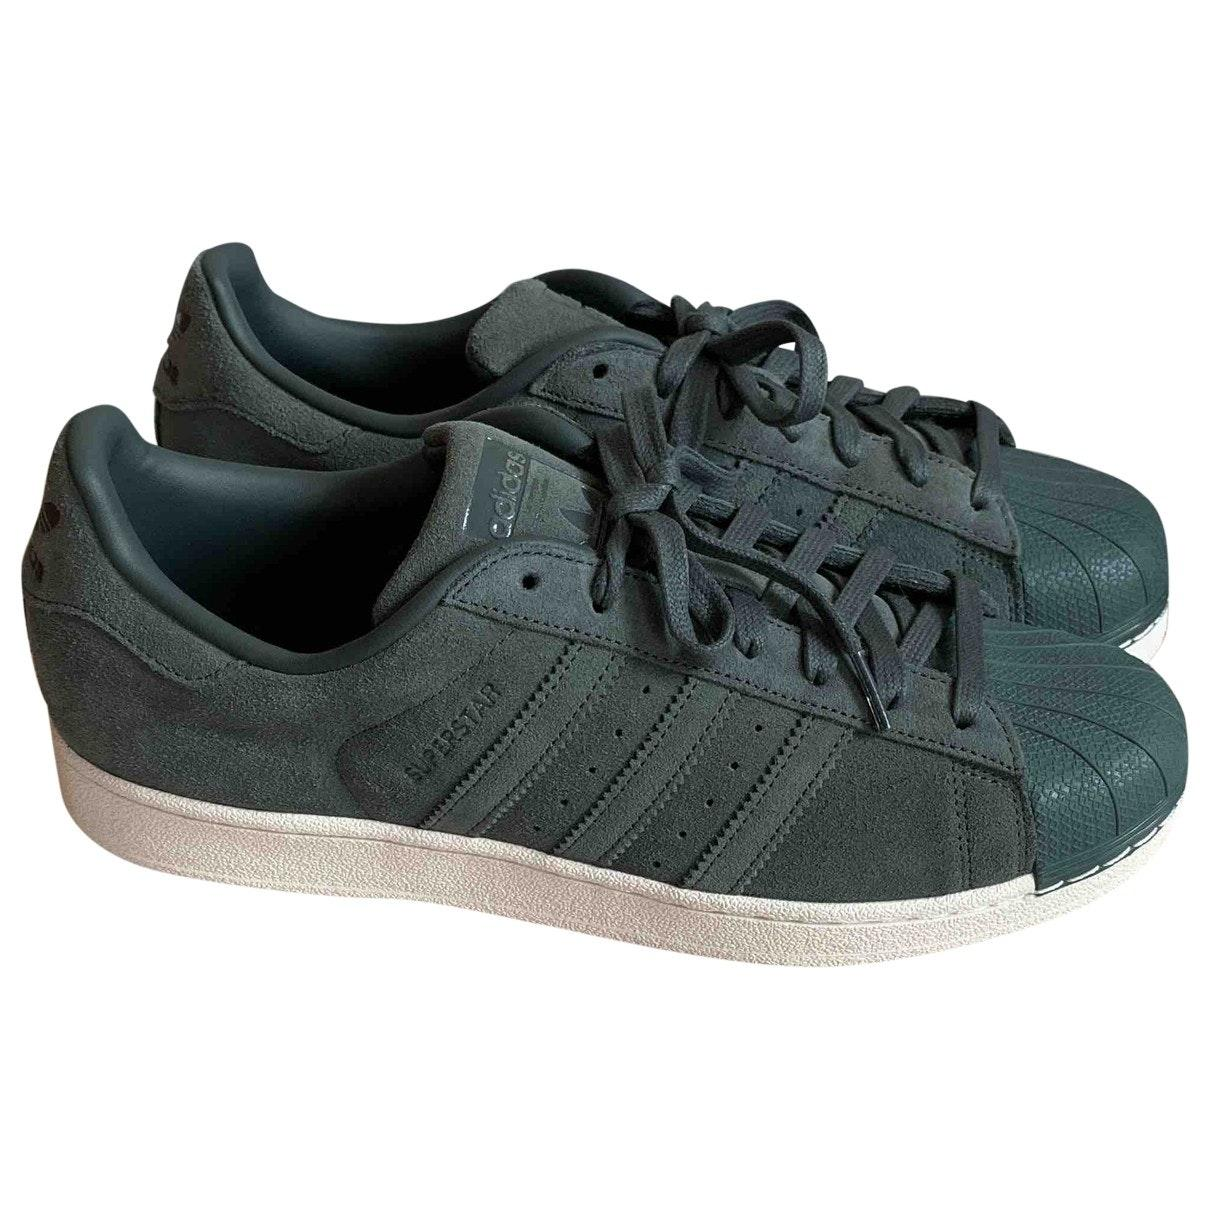 adidas superstar green suede